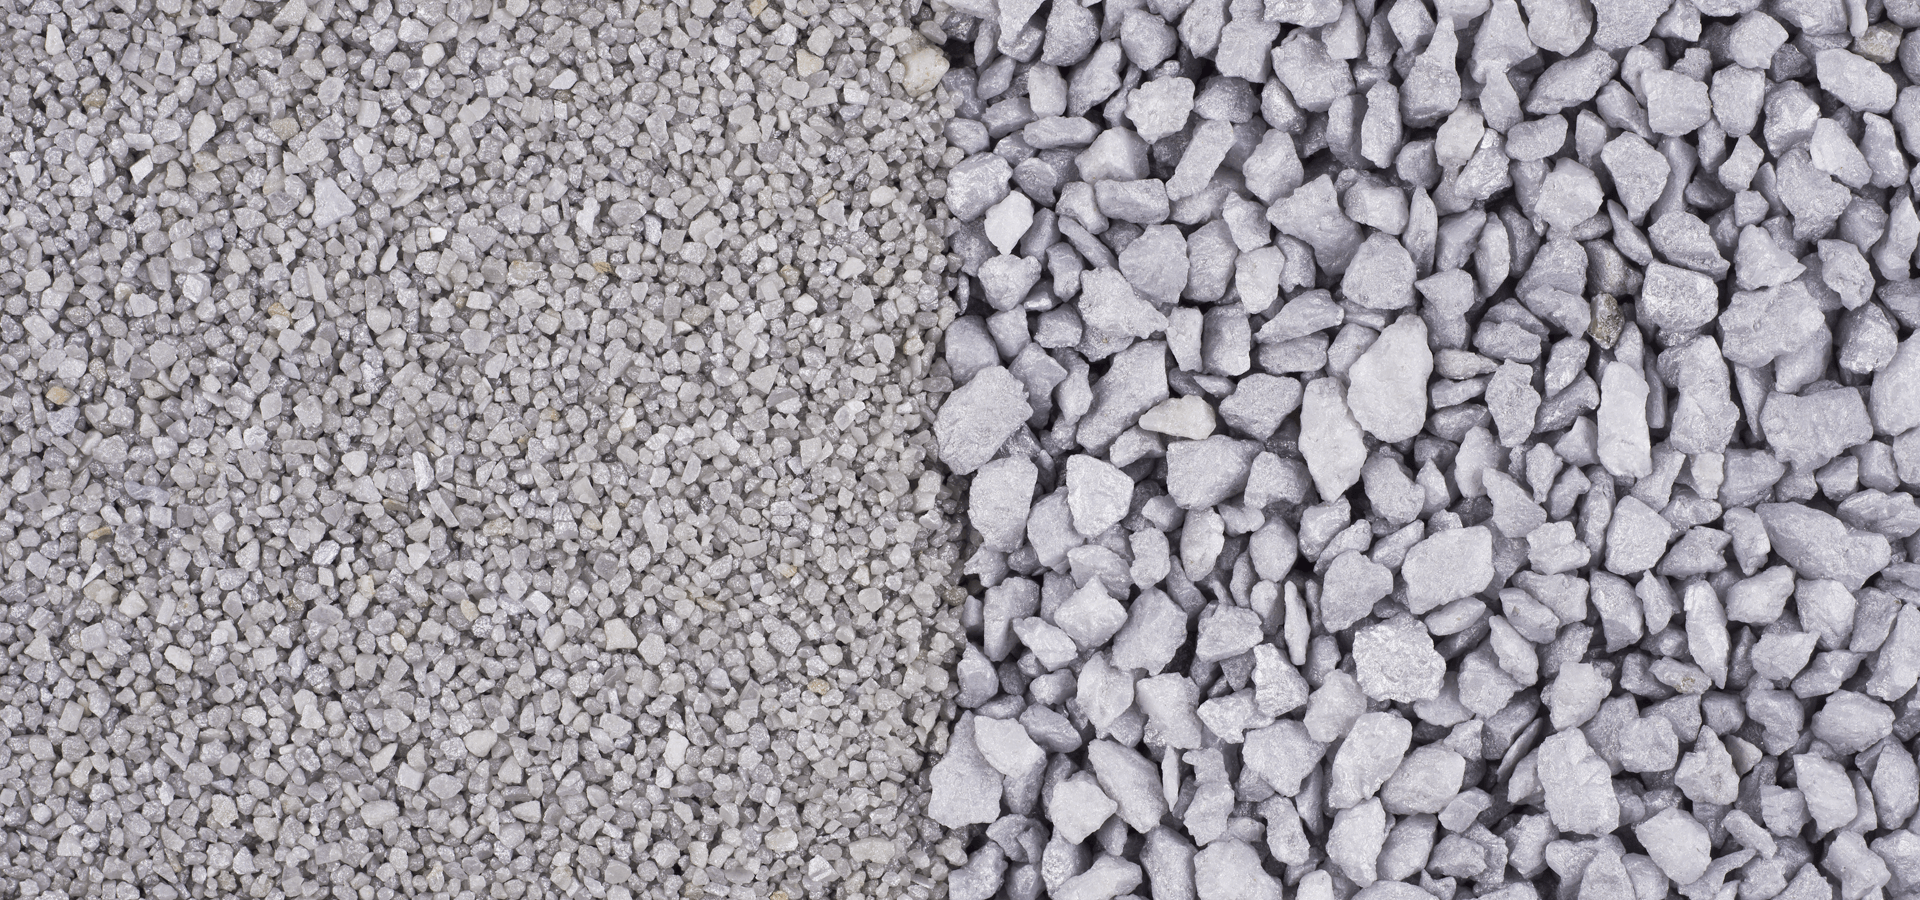 Aggregates vs gravels: What you need to know